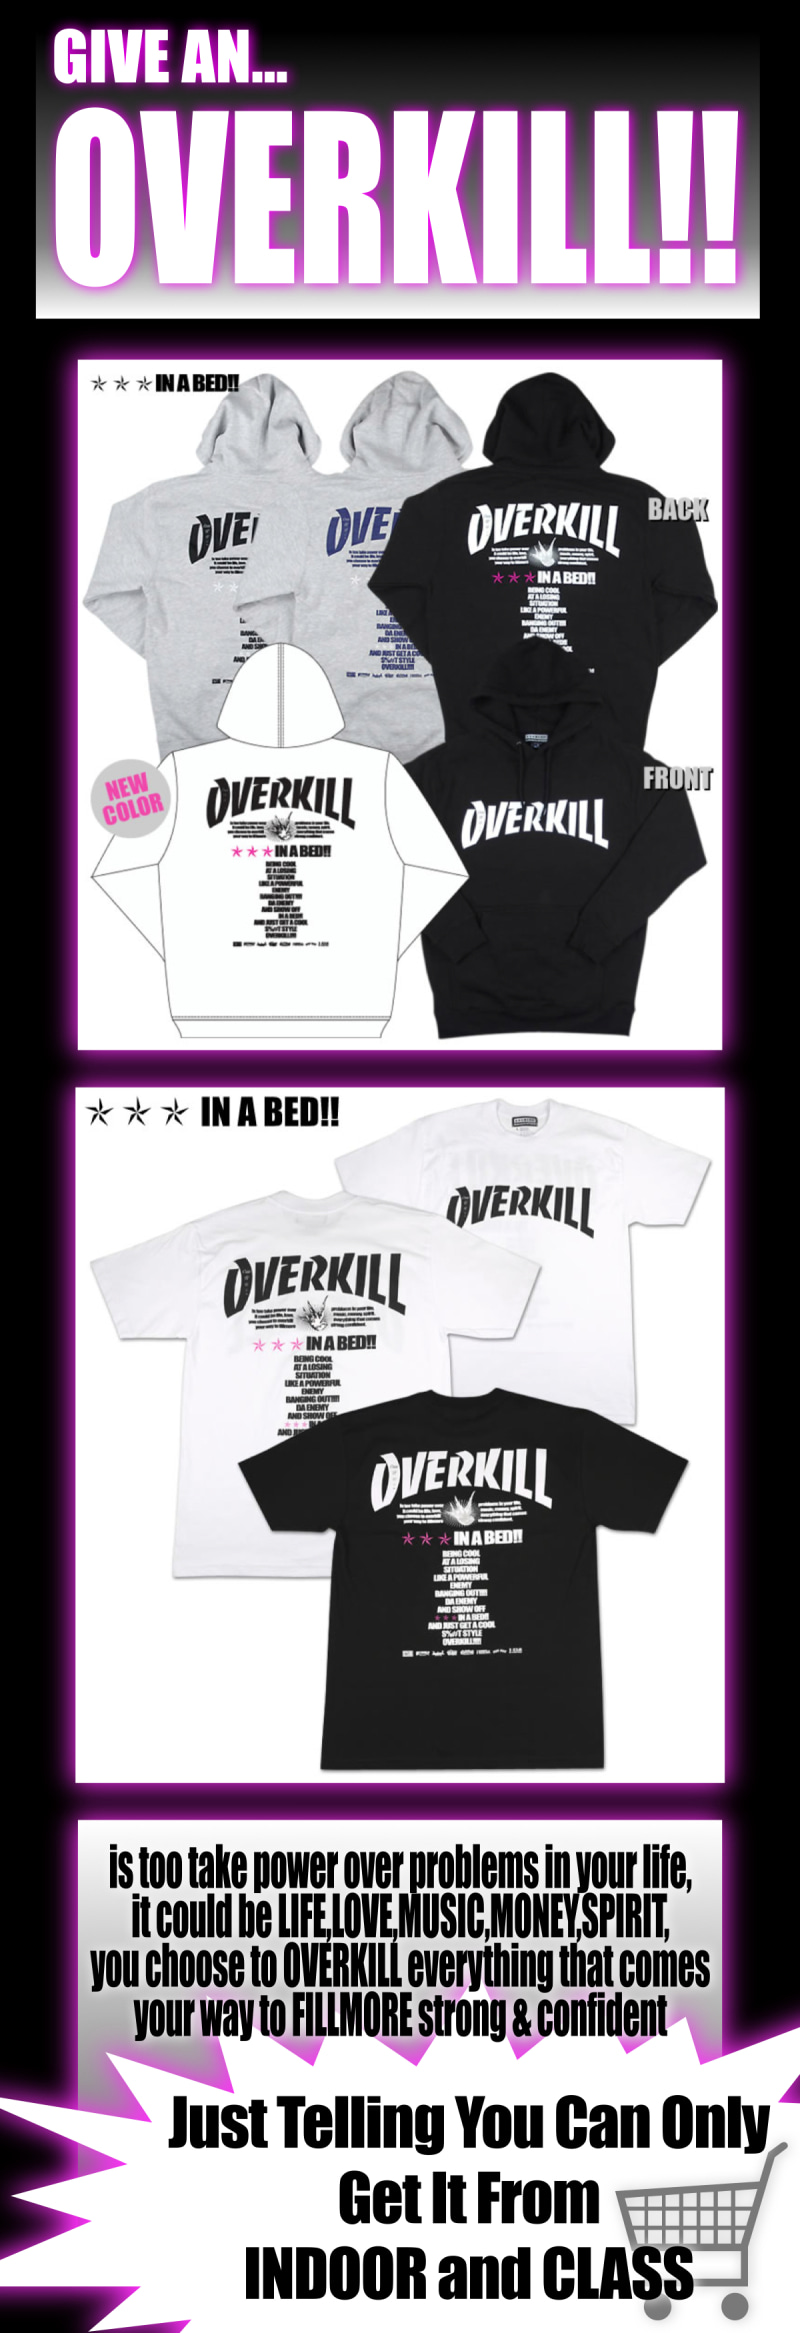 FILLMOREオフィシャルブログ「GIVE AN OVERKILL!!」 Powered by Ameba-OVERKILL!!